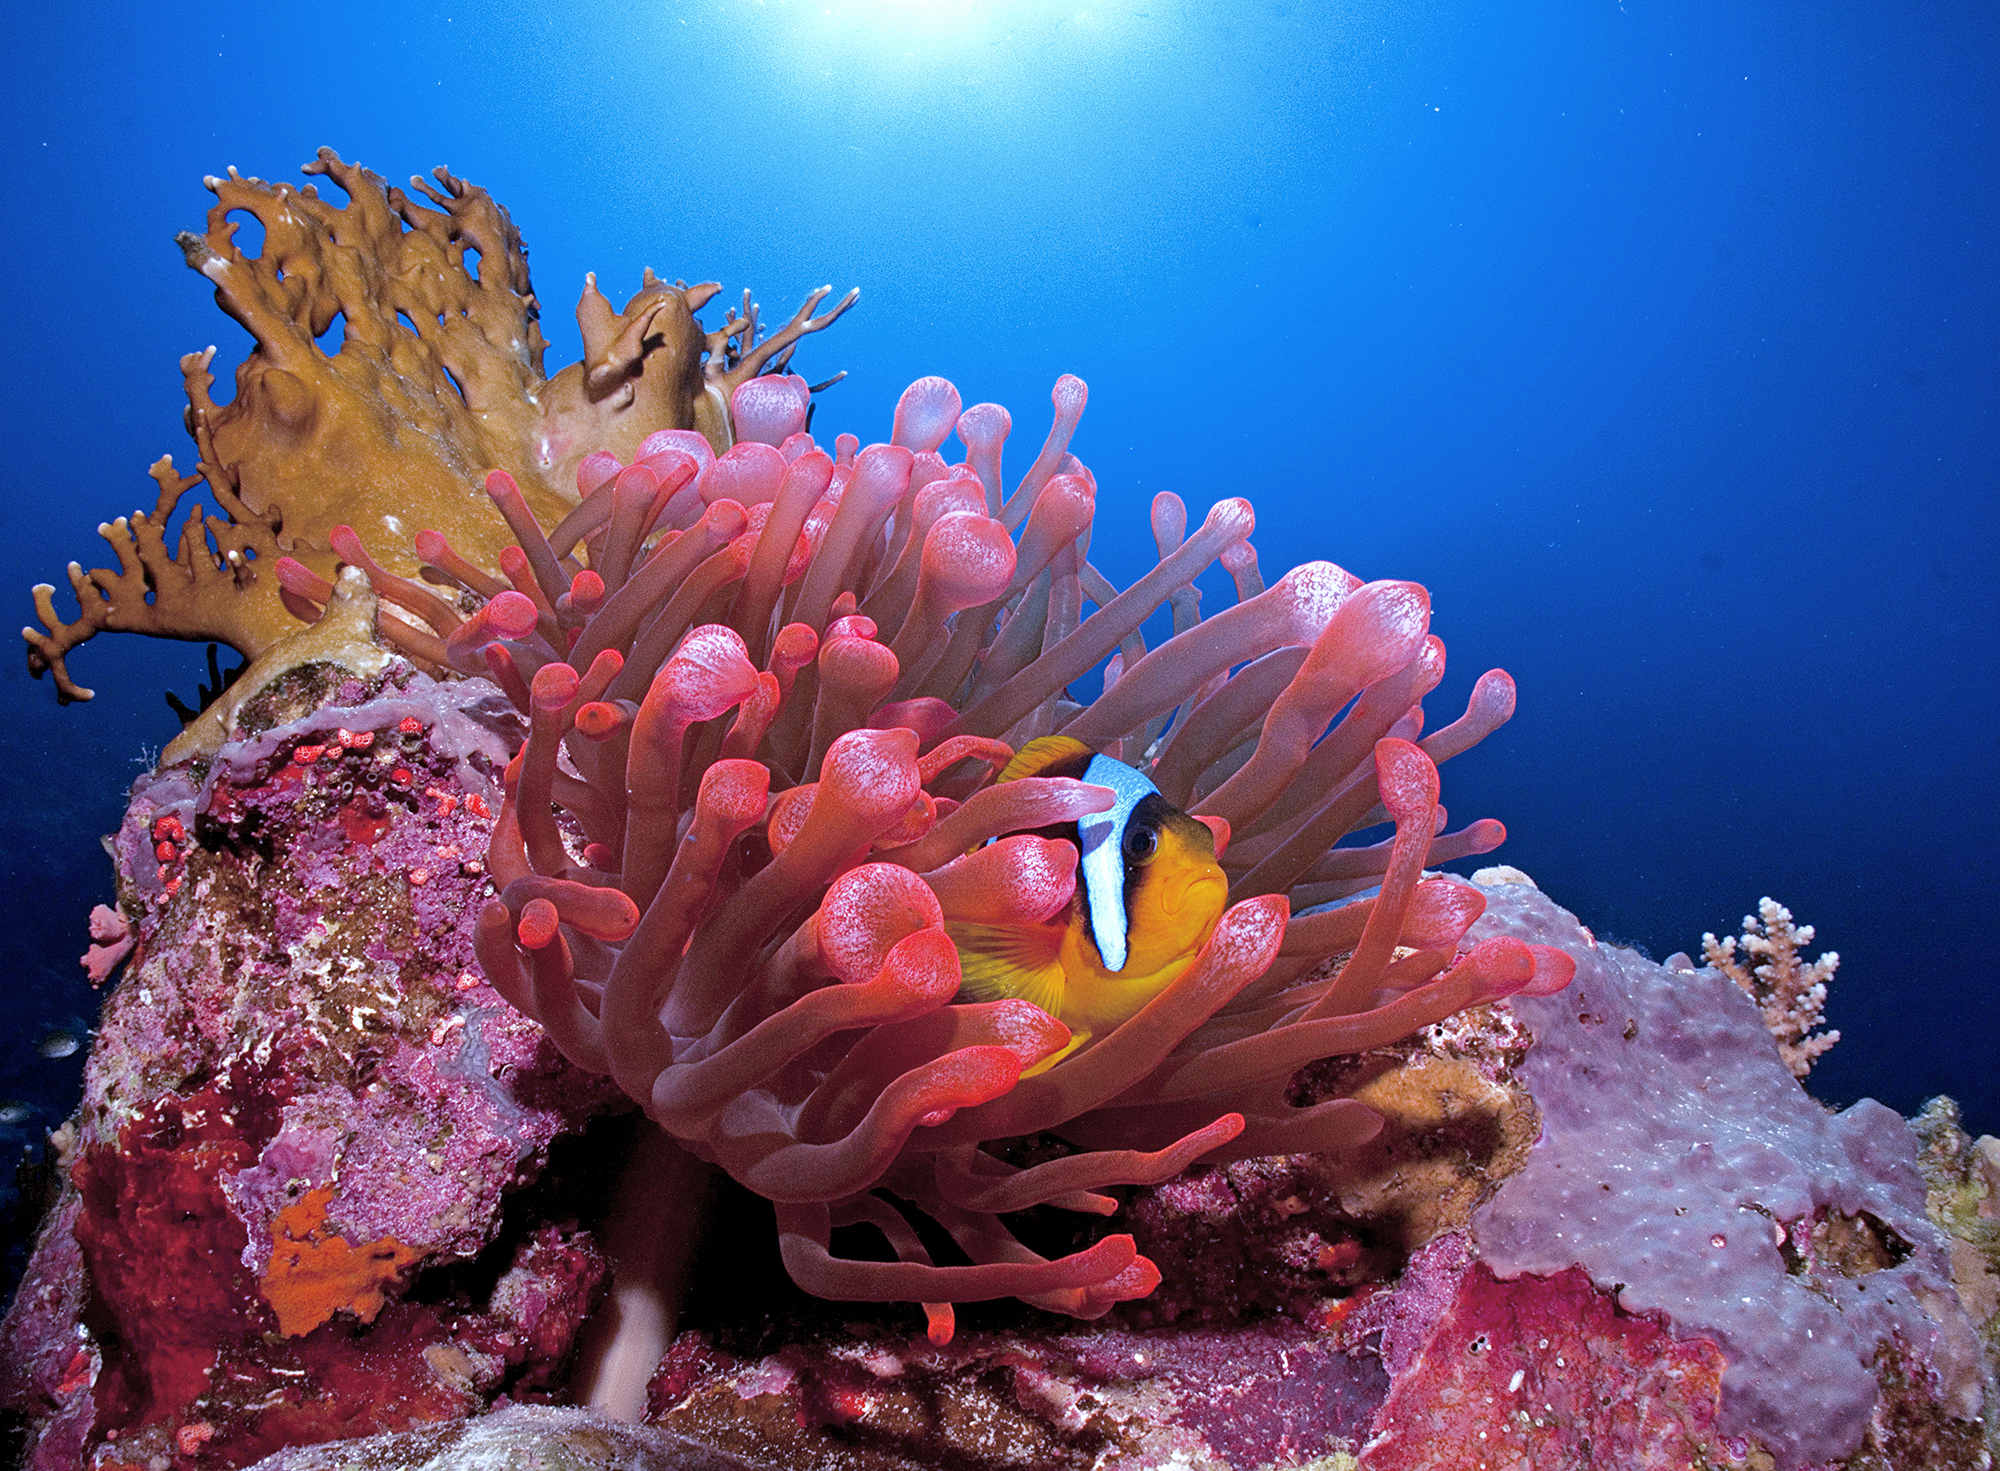 clownfish in anemone CRedit: Cinzia Osele Bismarck / coral reef image bank